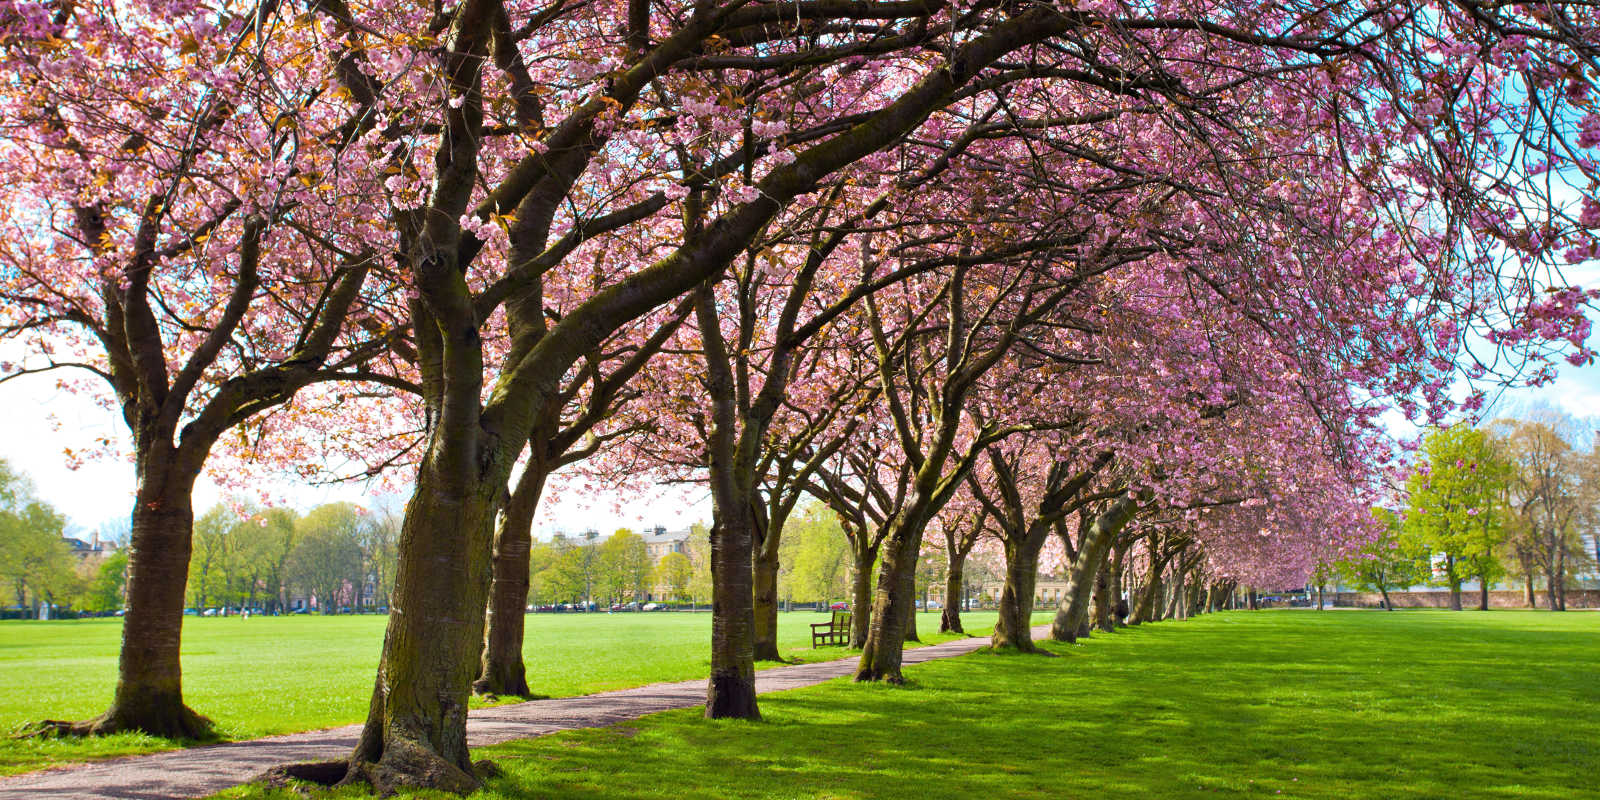 Pink blossom trees in The Meadows Edinburgh